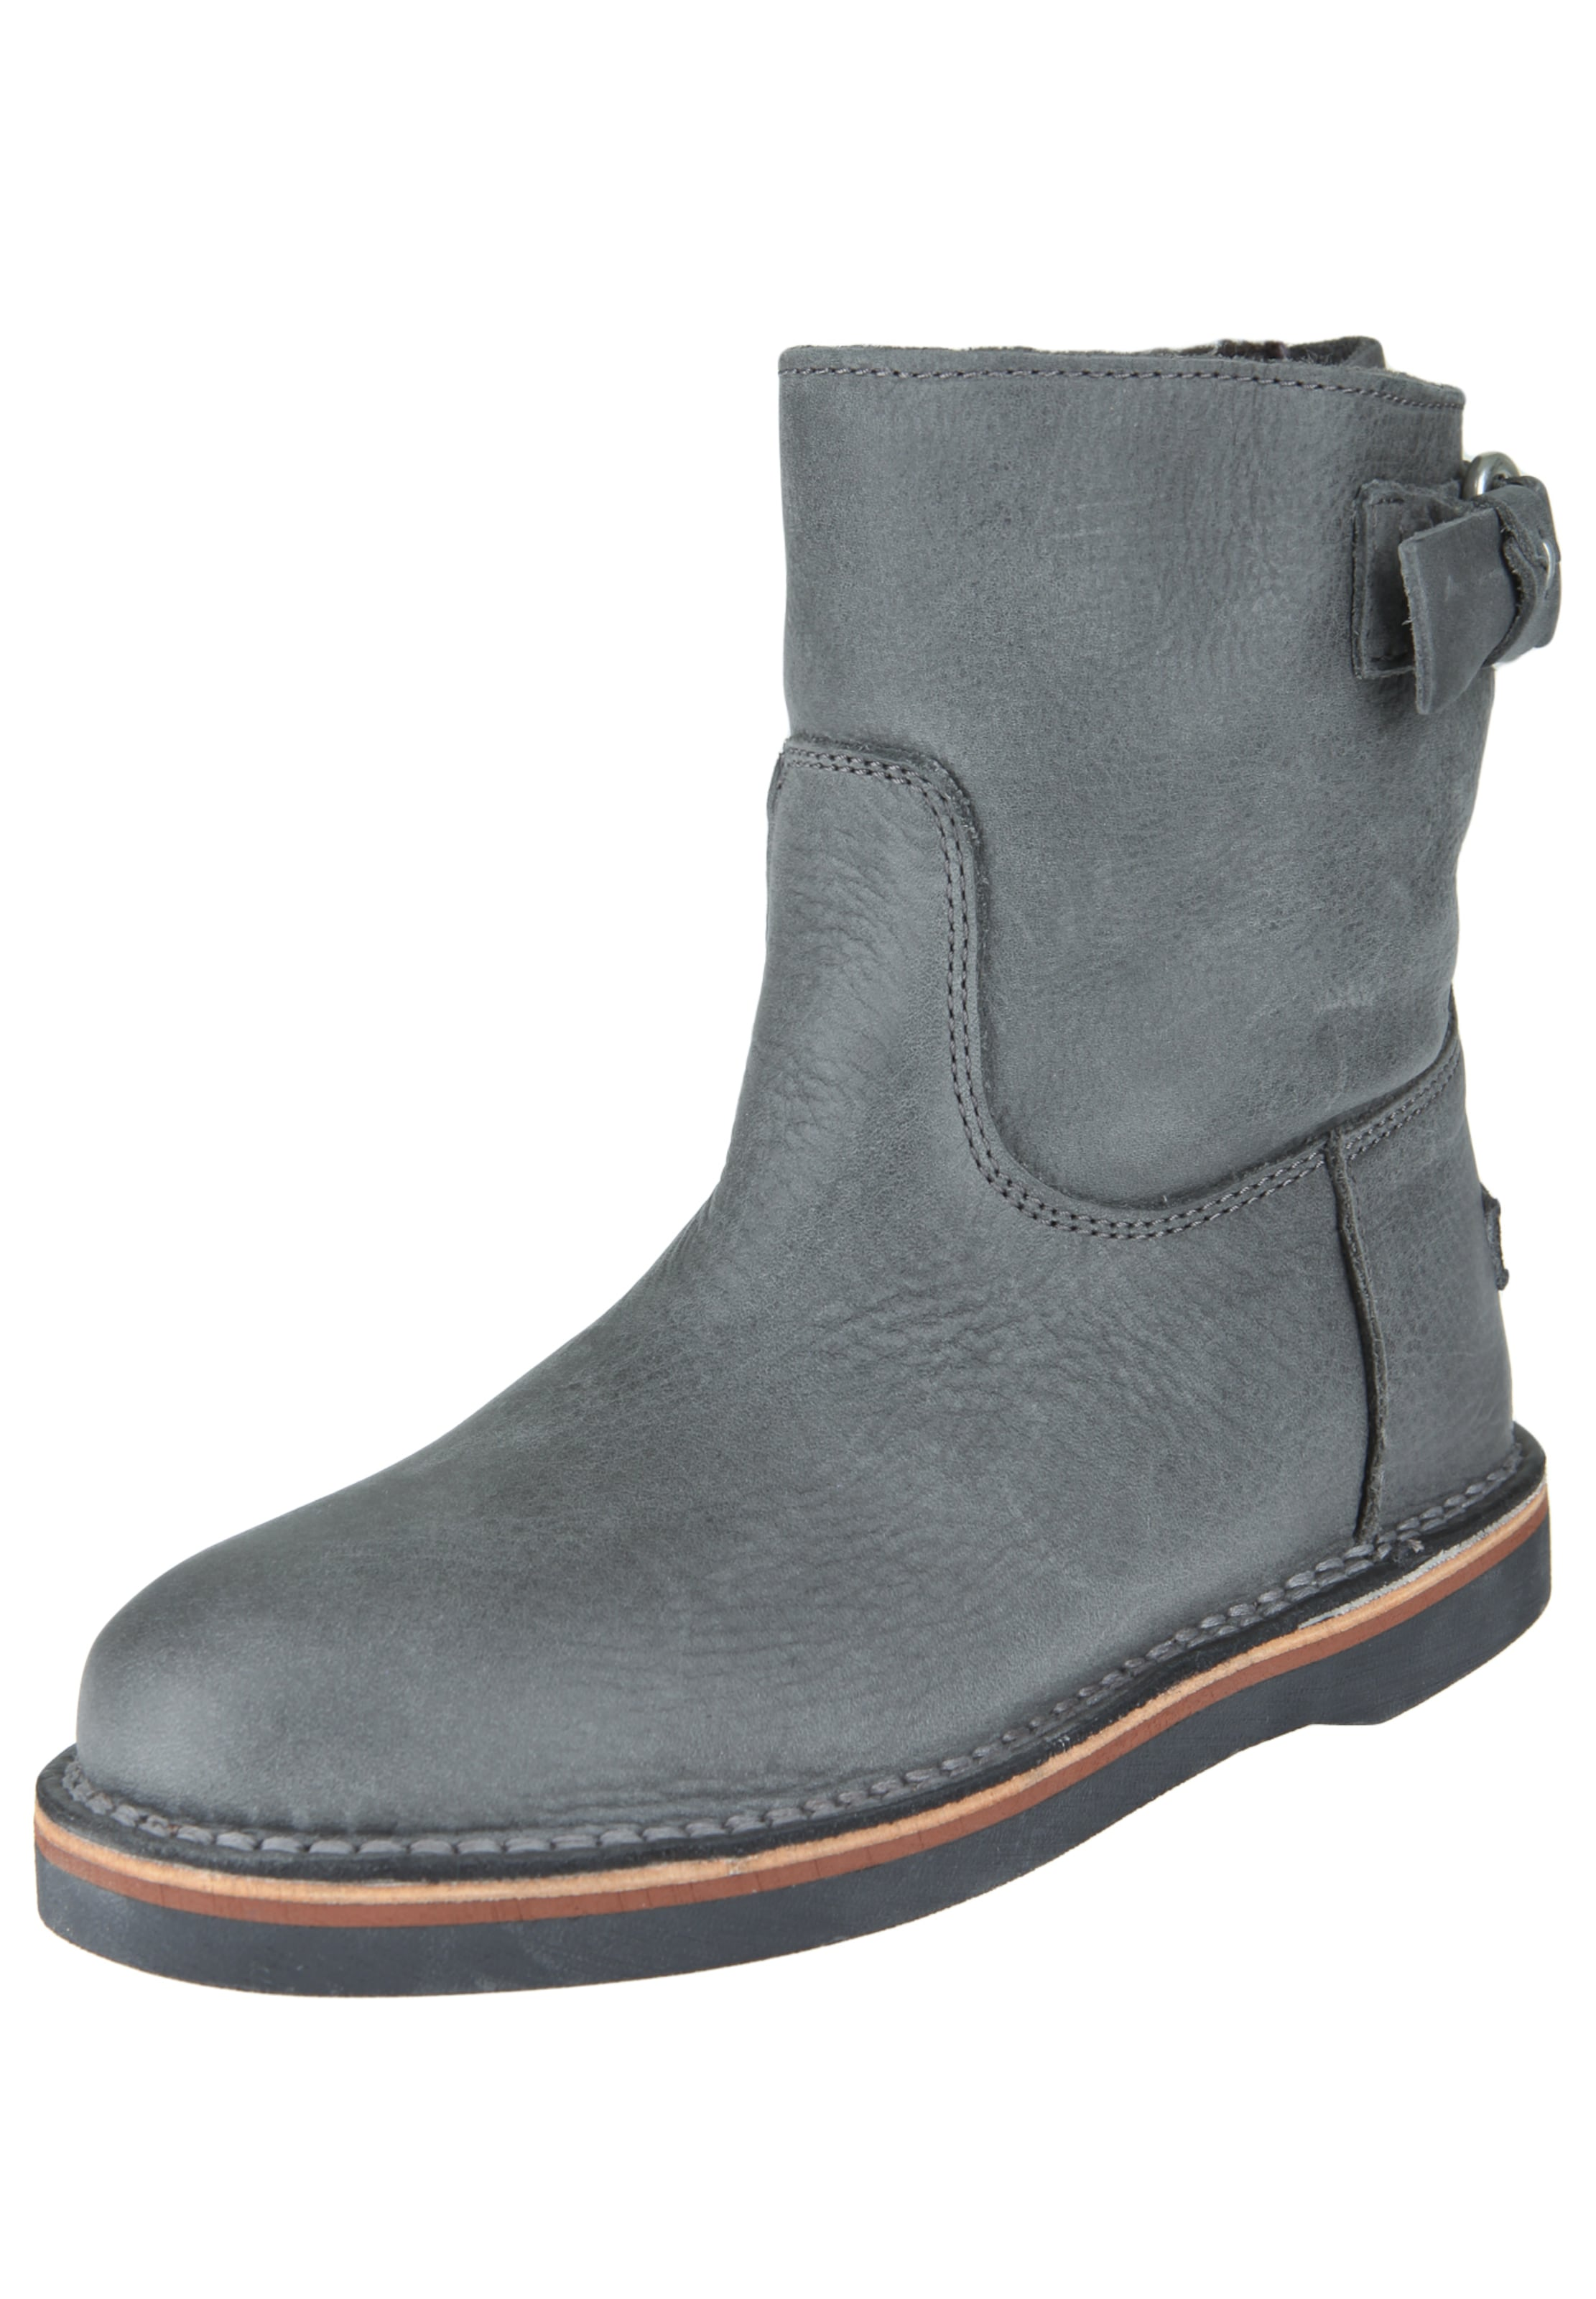 SHABBIES AMSTERDAM Lederstiefelette BUCKLE BOOTY Hohe Qualität